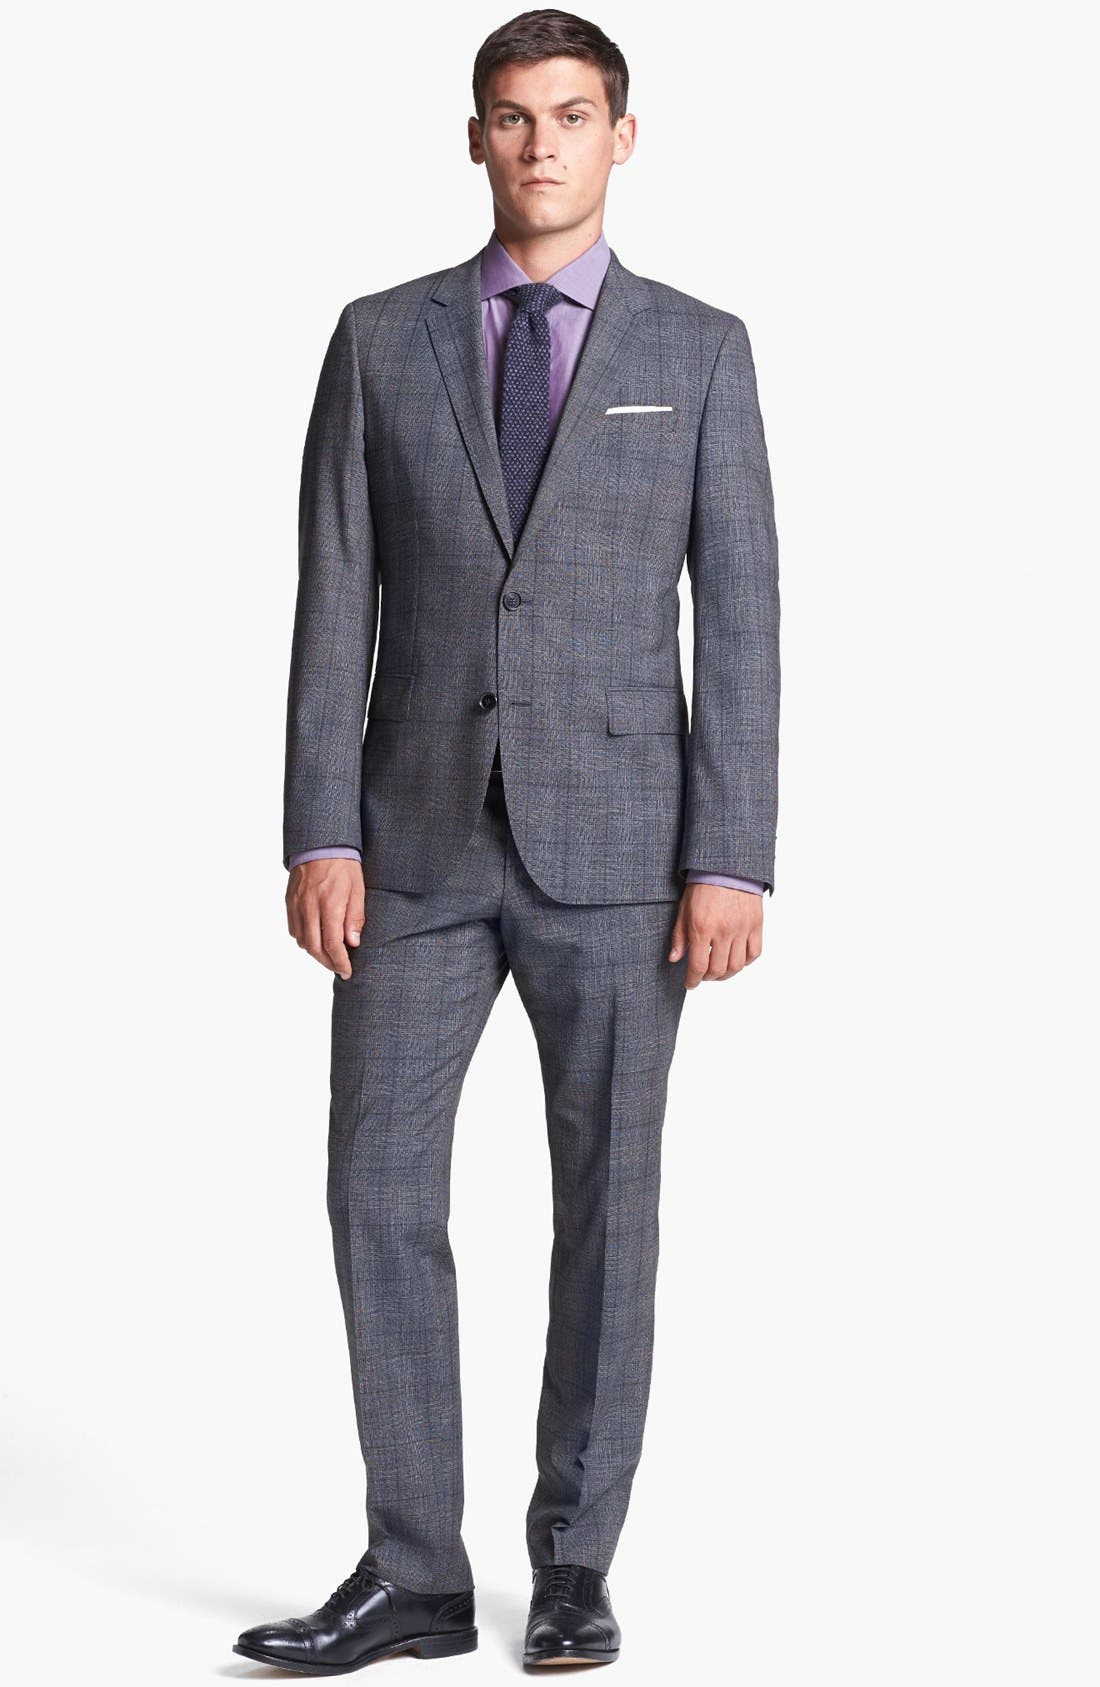 Main Image - BOSS HUGO BOSS 'Huge/Genius' Trim Fit Plaid Suit